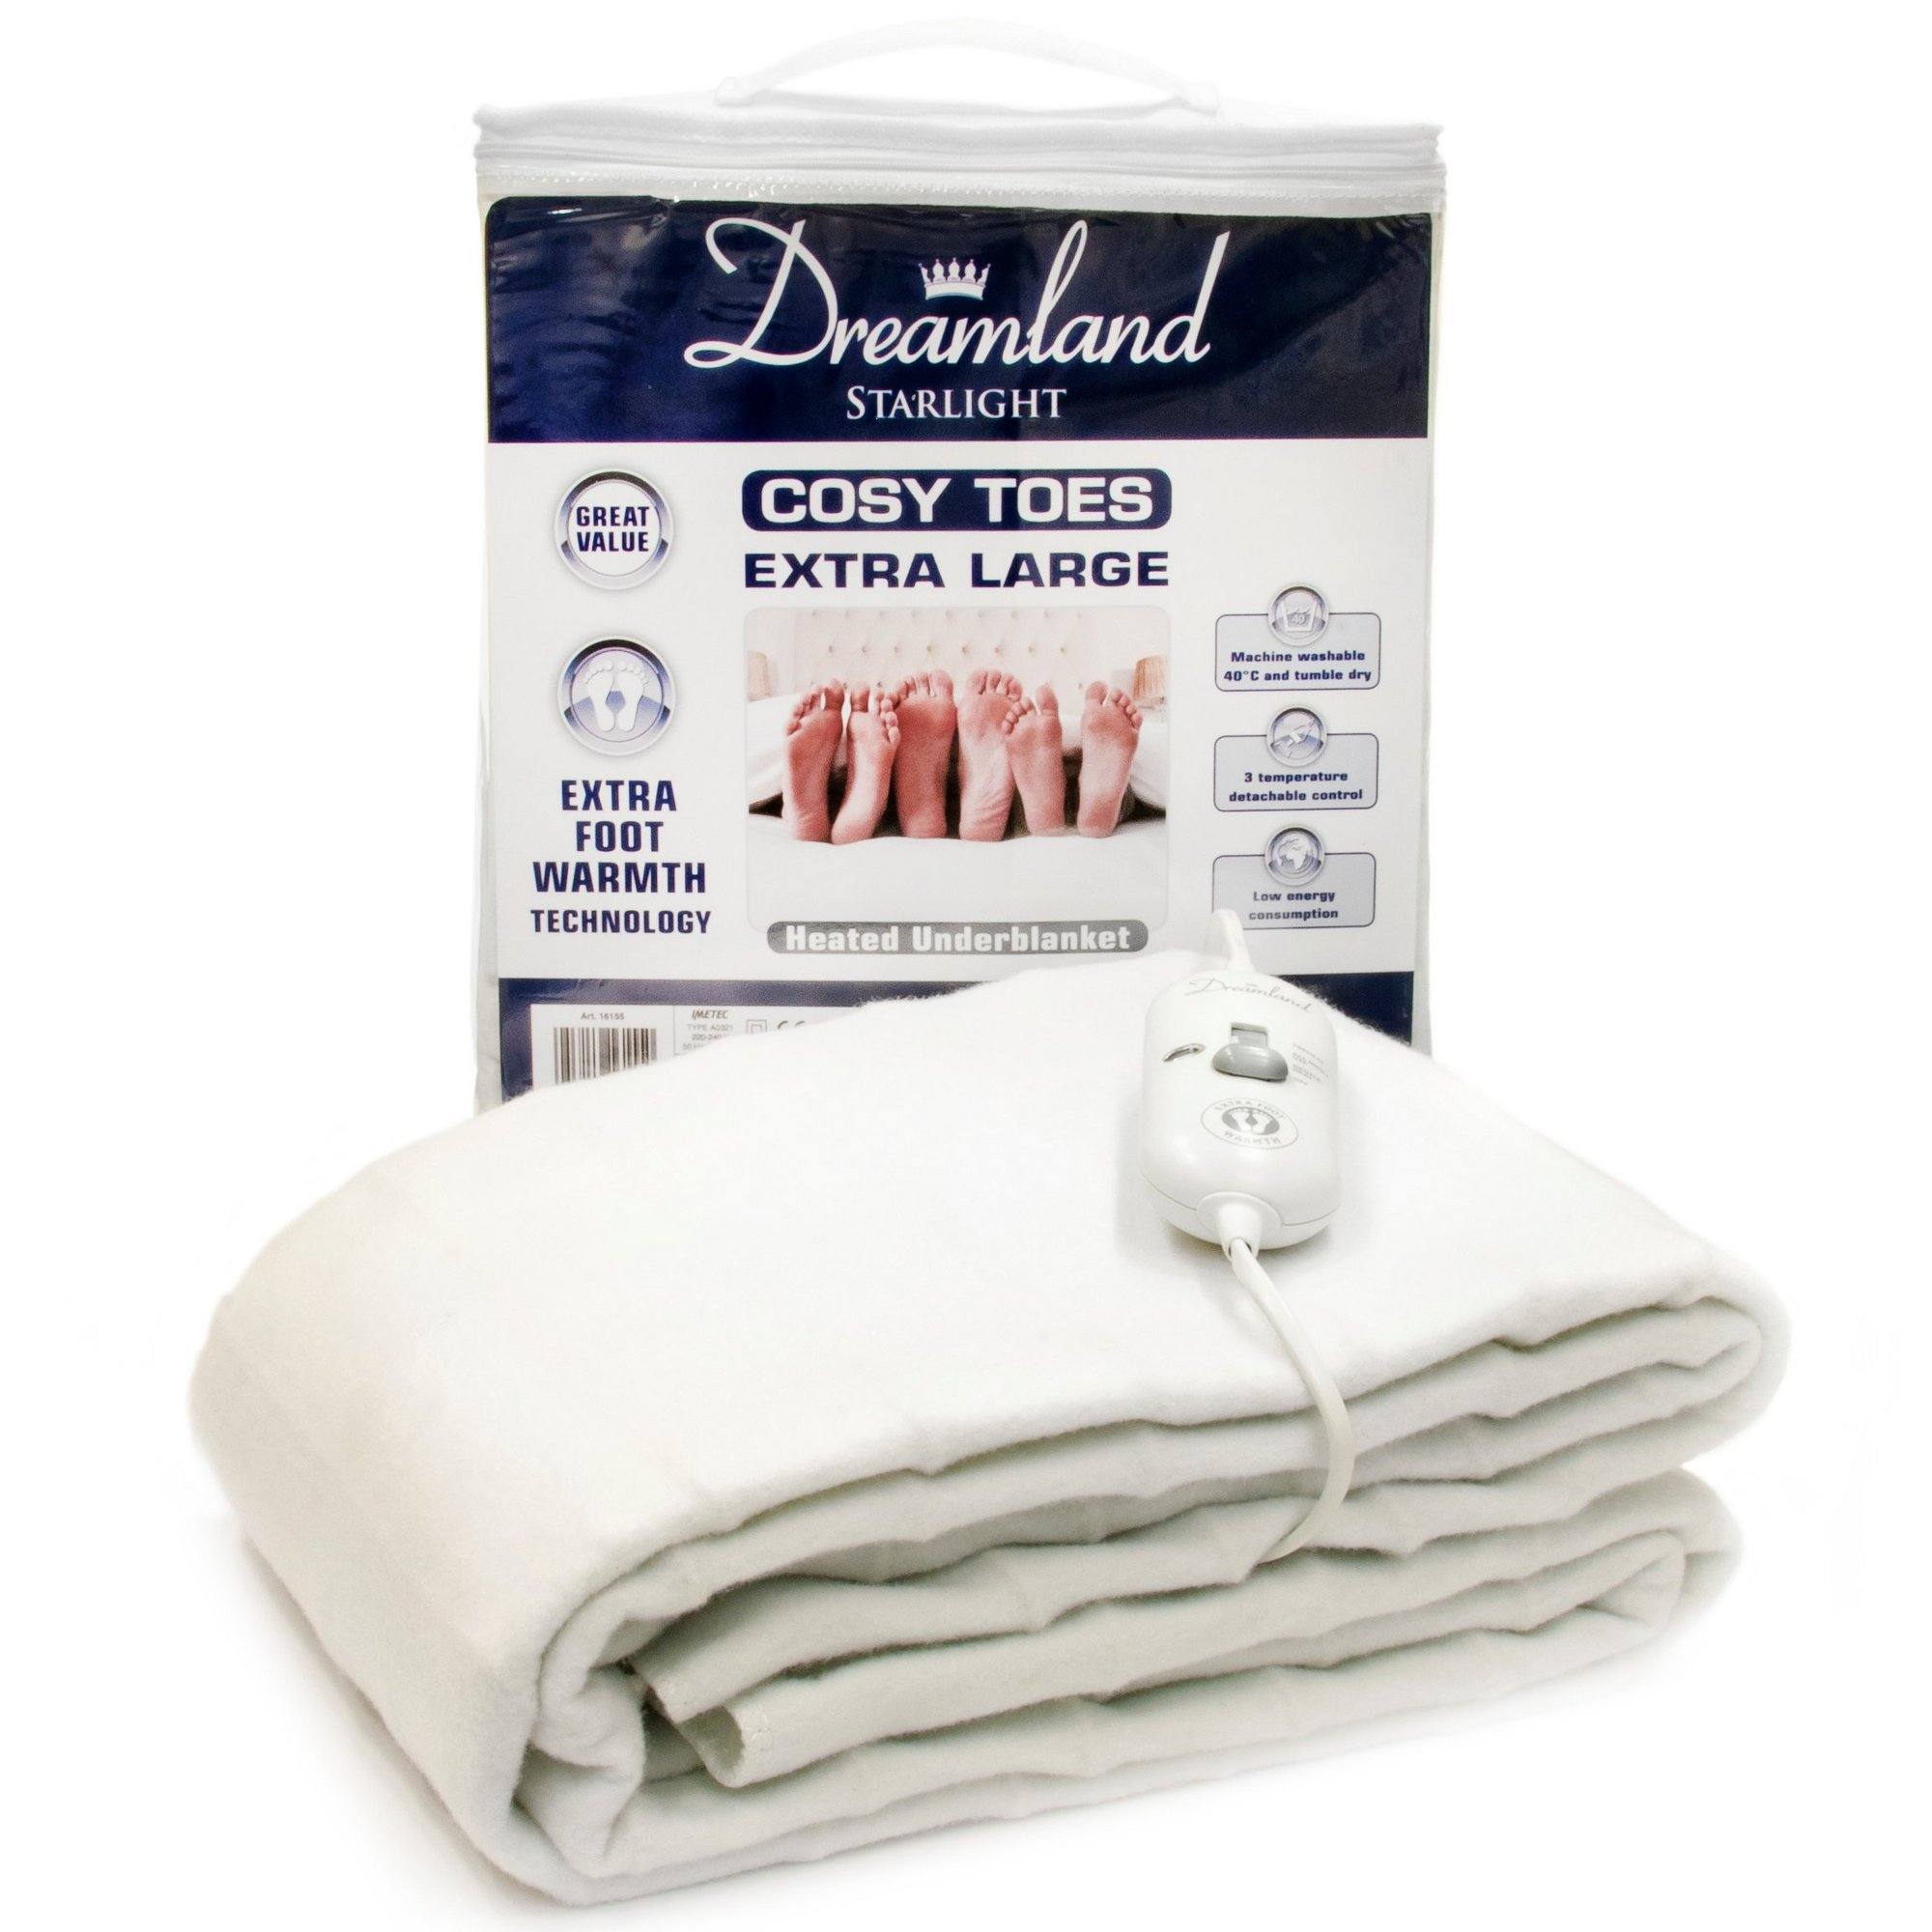 Image of Dreamland Cosy Toes Large Electric Blanket